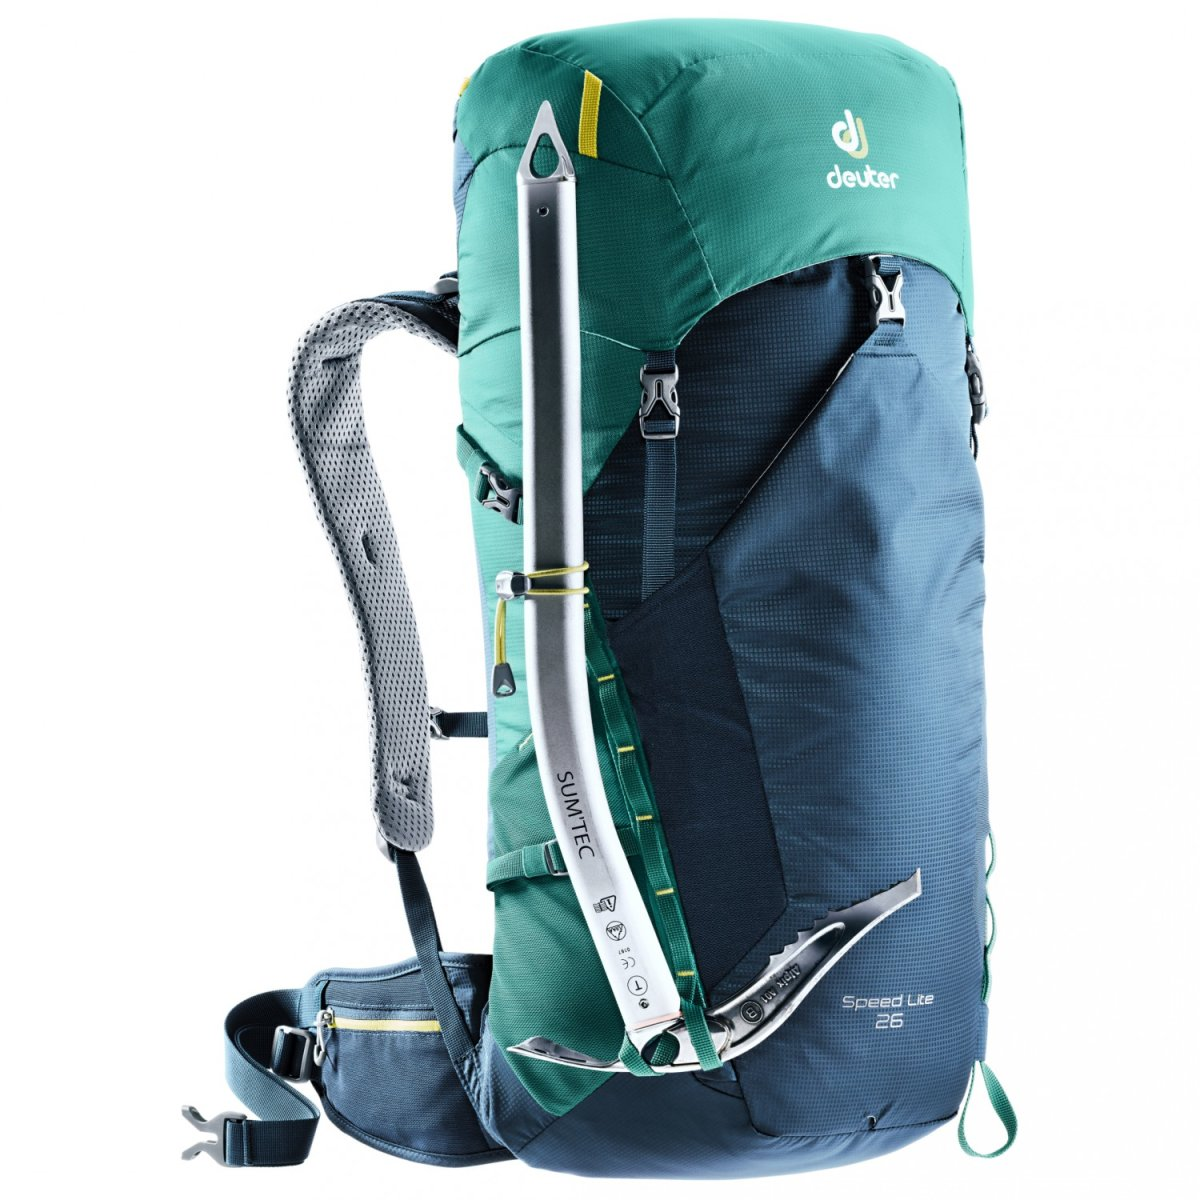 Рюкзак Deuter Speed Lite 26 maron-cranberry (5535) Speed Lite 26 6 3410618 5535